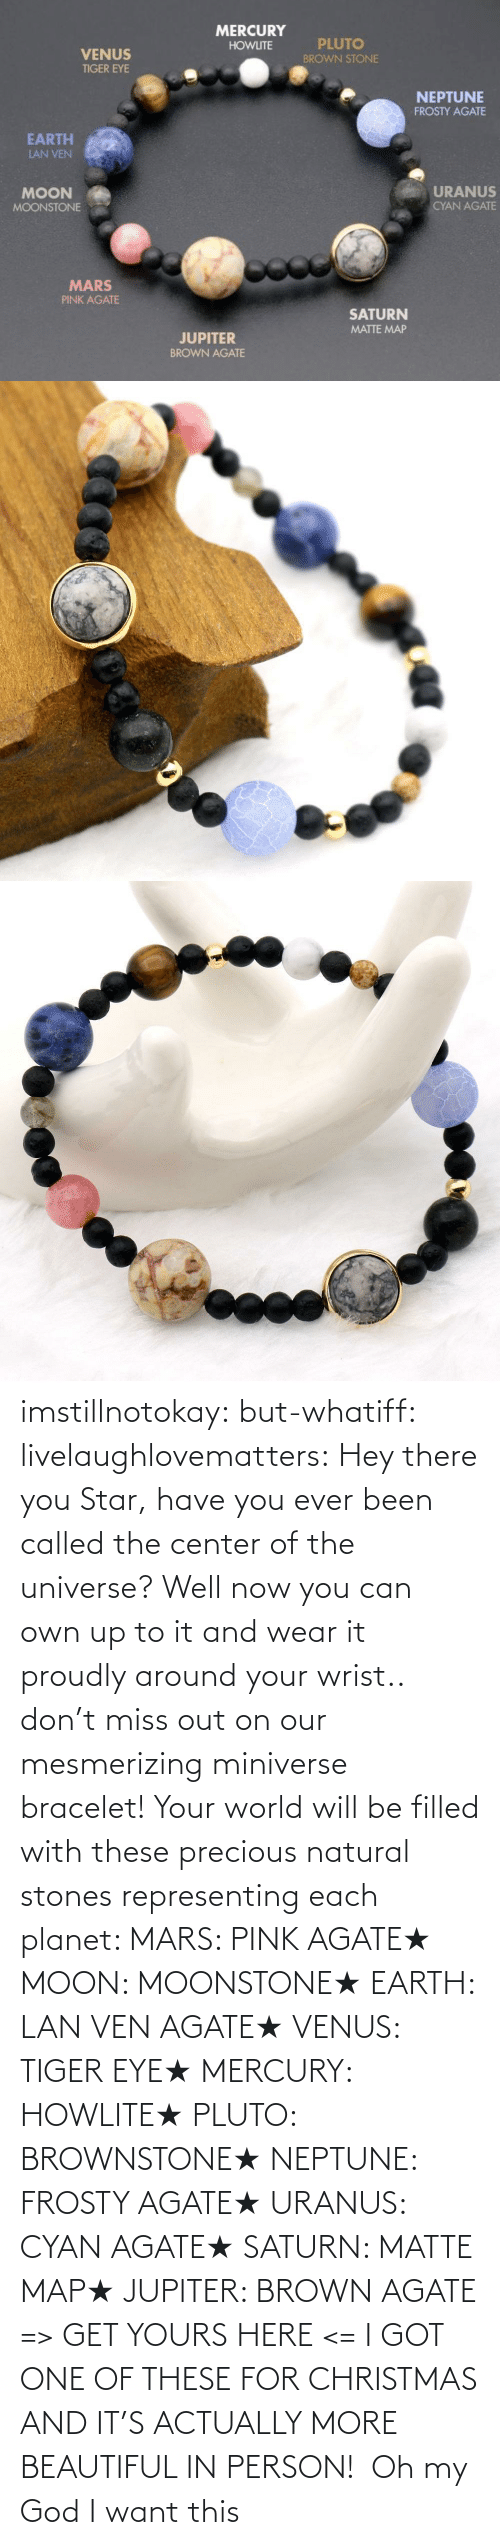 miss: imstillnotokay:  but-whatiff: livelaughlovematters:  Hey there you Star, have you ever been called the center of the universe? Well now you can own up to it and wear it proudly around your wrist.. don't miss out on our mesmerizing miniverse bracelet! Your world will be filled with these precious natural stones representing each planet:  MARS: PINK AGATE★ MOON: MOONSTONE★ EARTH: LAN VEN AGATE★ VENUS: TIGER EYE★ MERCURY: HOWLITE★ PLUTO: BROWNSTONE★ NEPTUNE: FROSTY AGATE★ URANUS: CYAN AGATE★ SATURN: MATTE MAP★ JUPITER: BROWN AGATE => GET YOURS HERE <=  I GOT ONE OF THESE FOR CHRISTMAS AND IT'S ACTUALLY MORE BEAUTIFUL IN PERSON!     Oh my God I want this